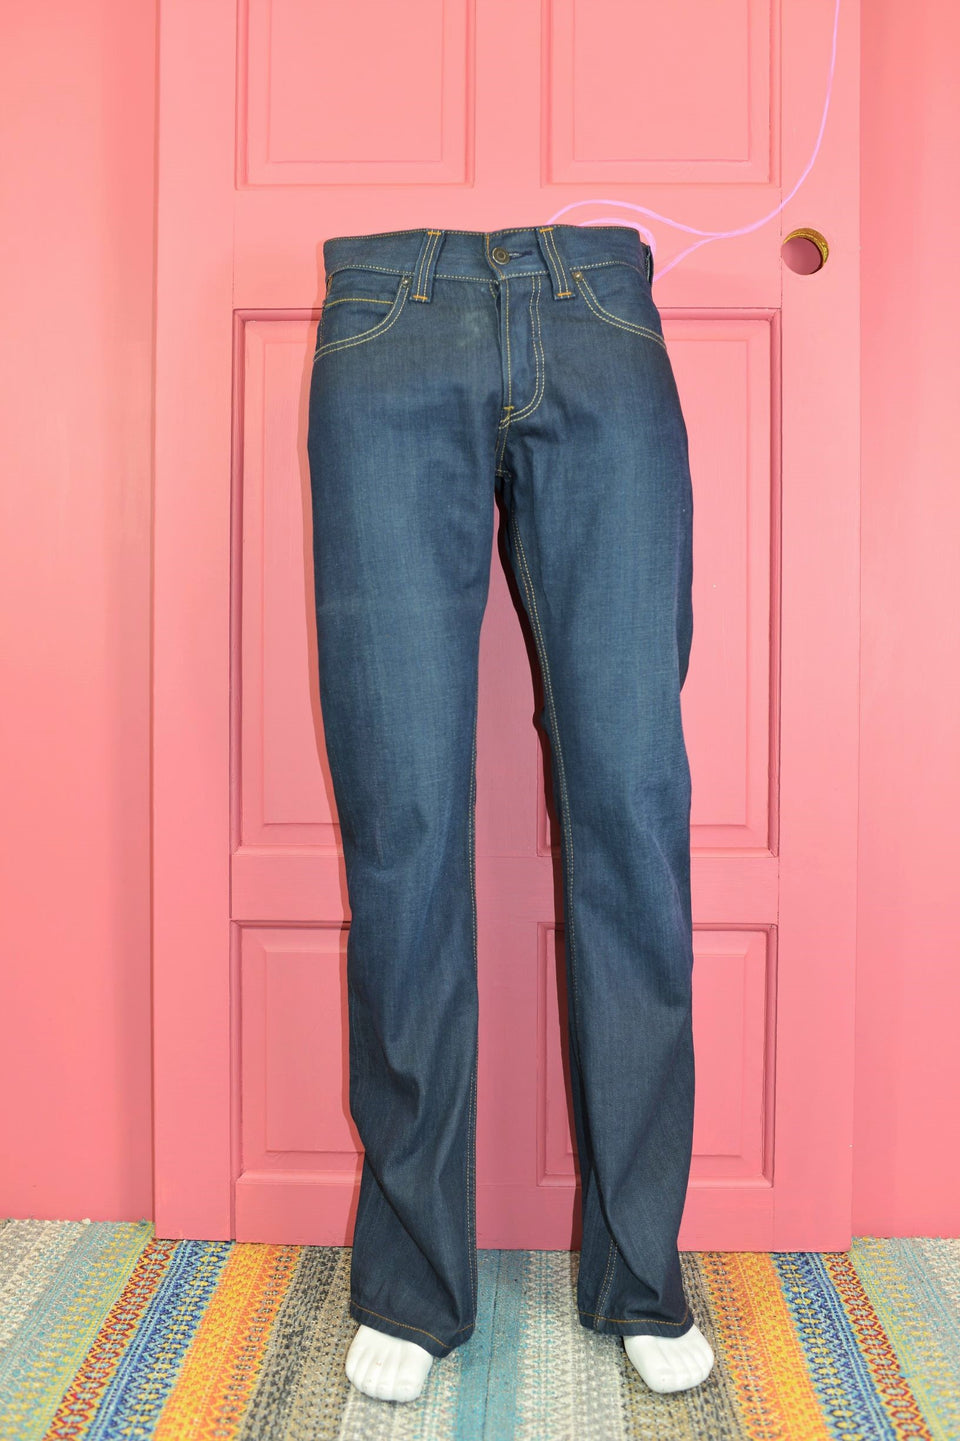 LEVI'S Men's 512 Dark Blue Denim Bootcut Jeans, W30 x L34. Pre-loved.